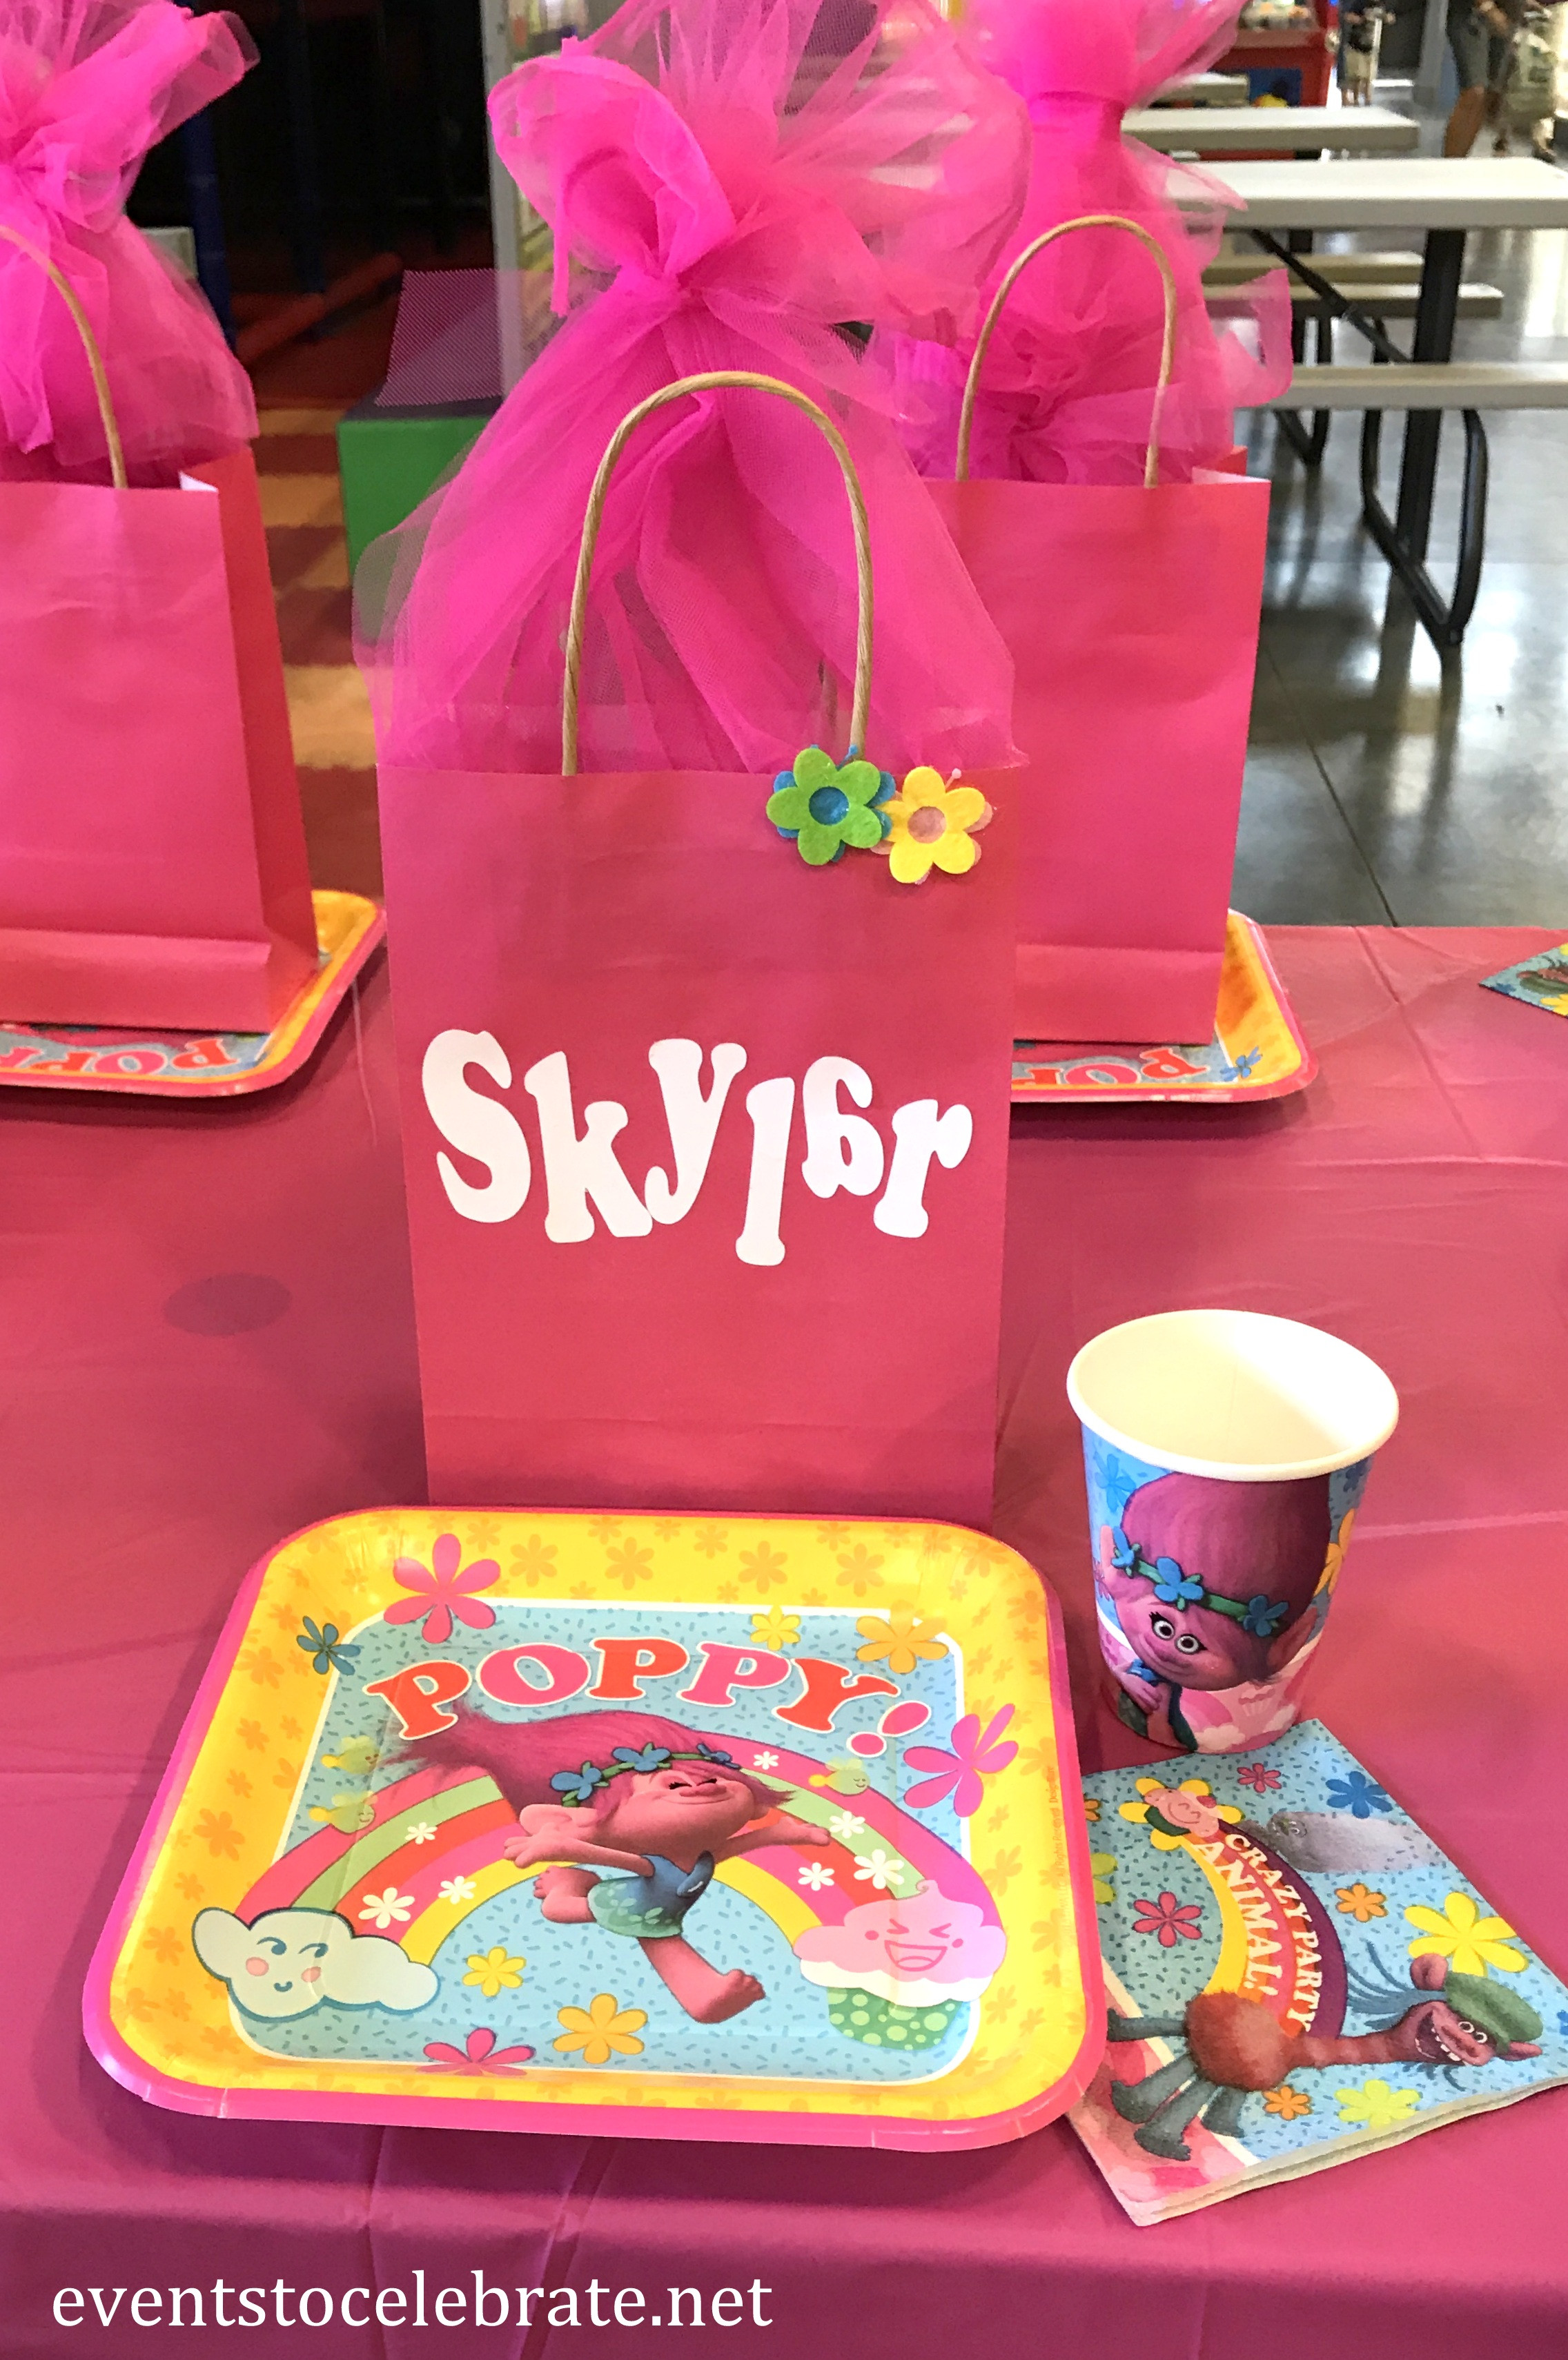 Best ideas about Birthday Party Supplies Online . Save or Pin Trolls Birthday Party Ideas events to CELEBRATE Now.